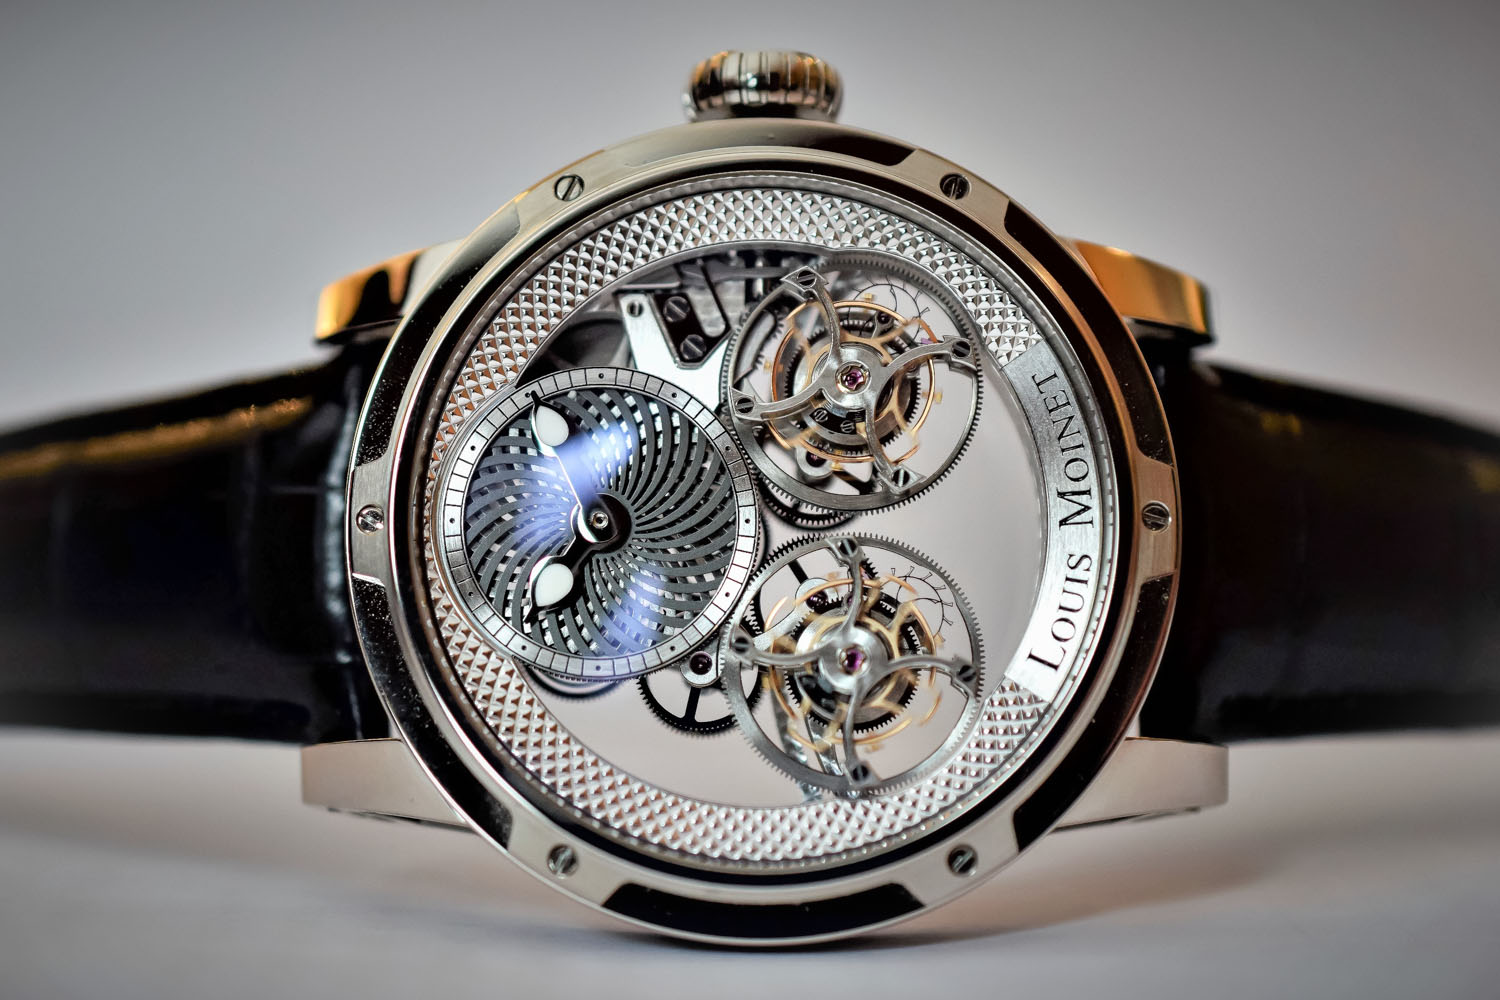 Louis Moinet Mobilis double tourbillon